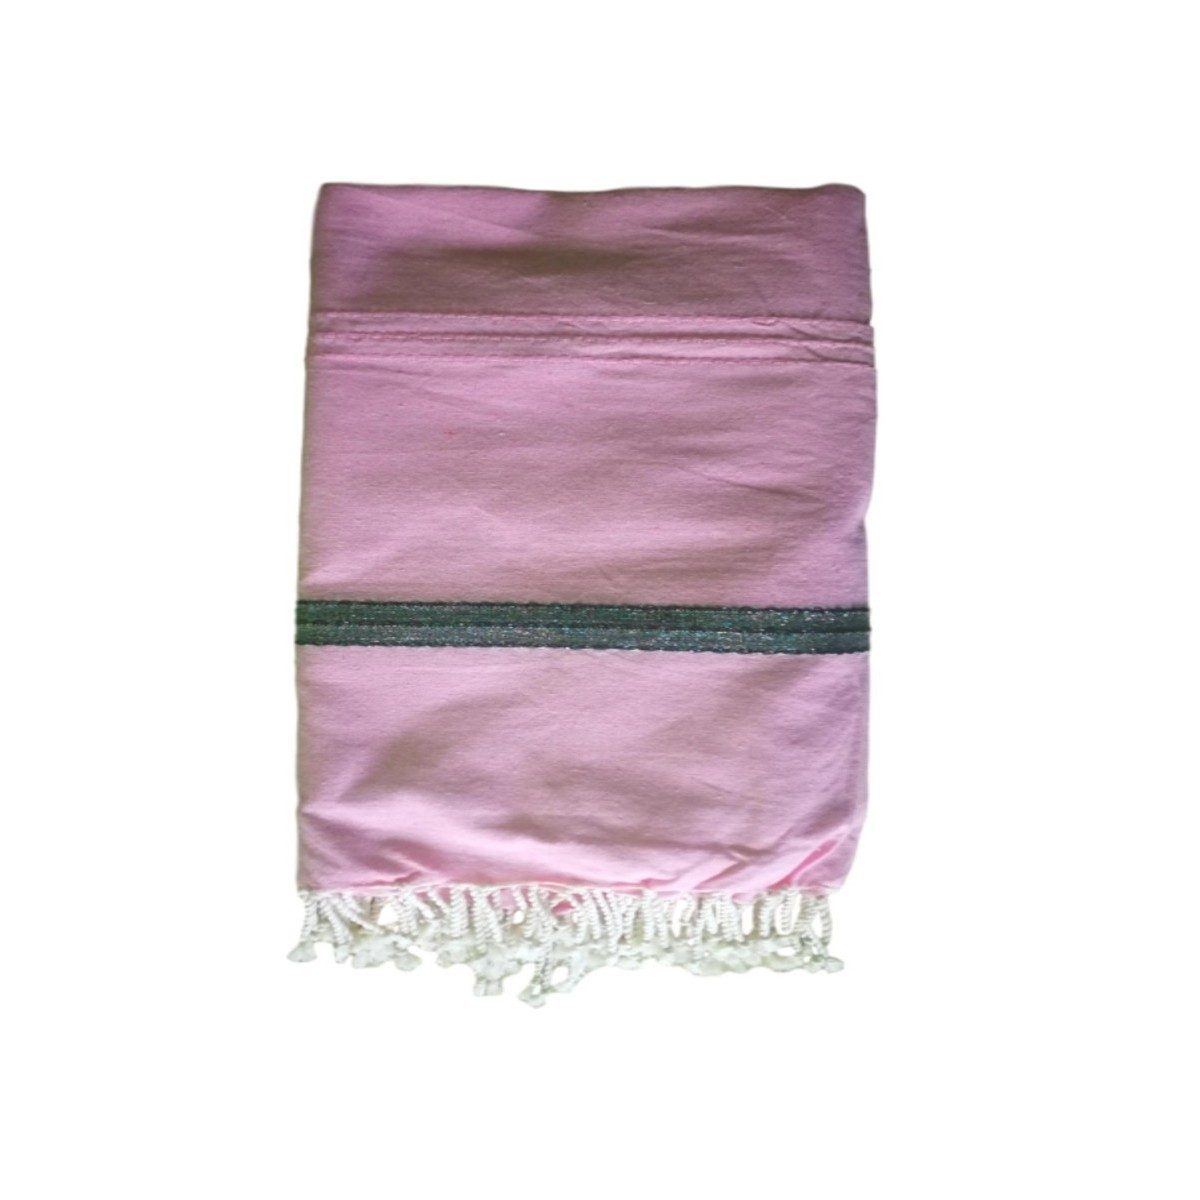 MULTI LUREX ROSA